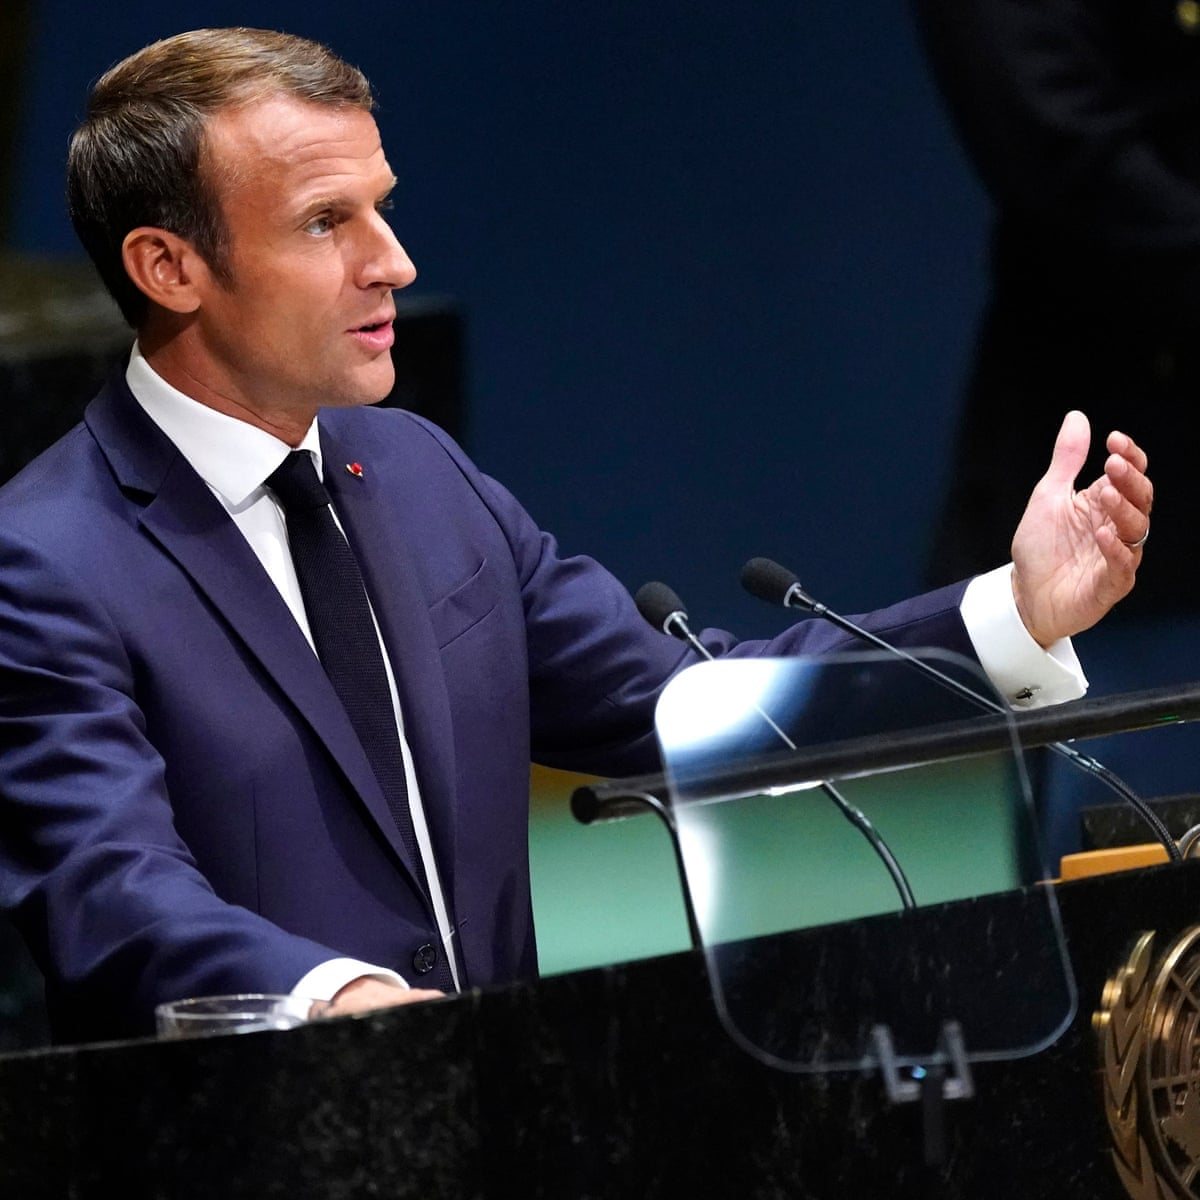 Un Summit Macron Says Us And Iran Must Resume Nuclear Talks As It Happened World News The Guardian